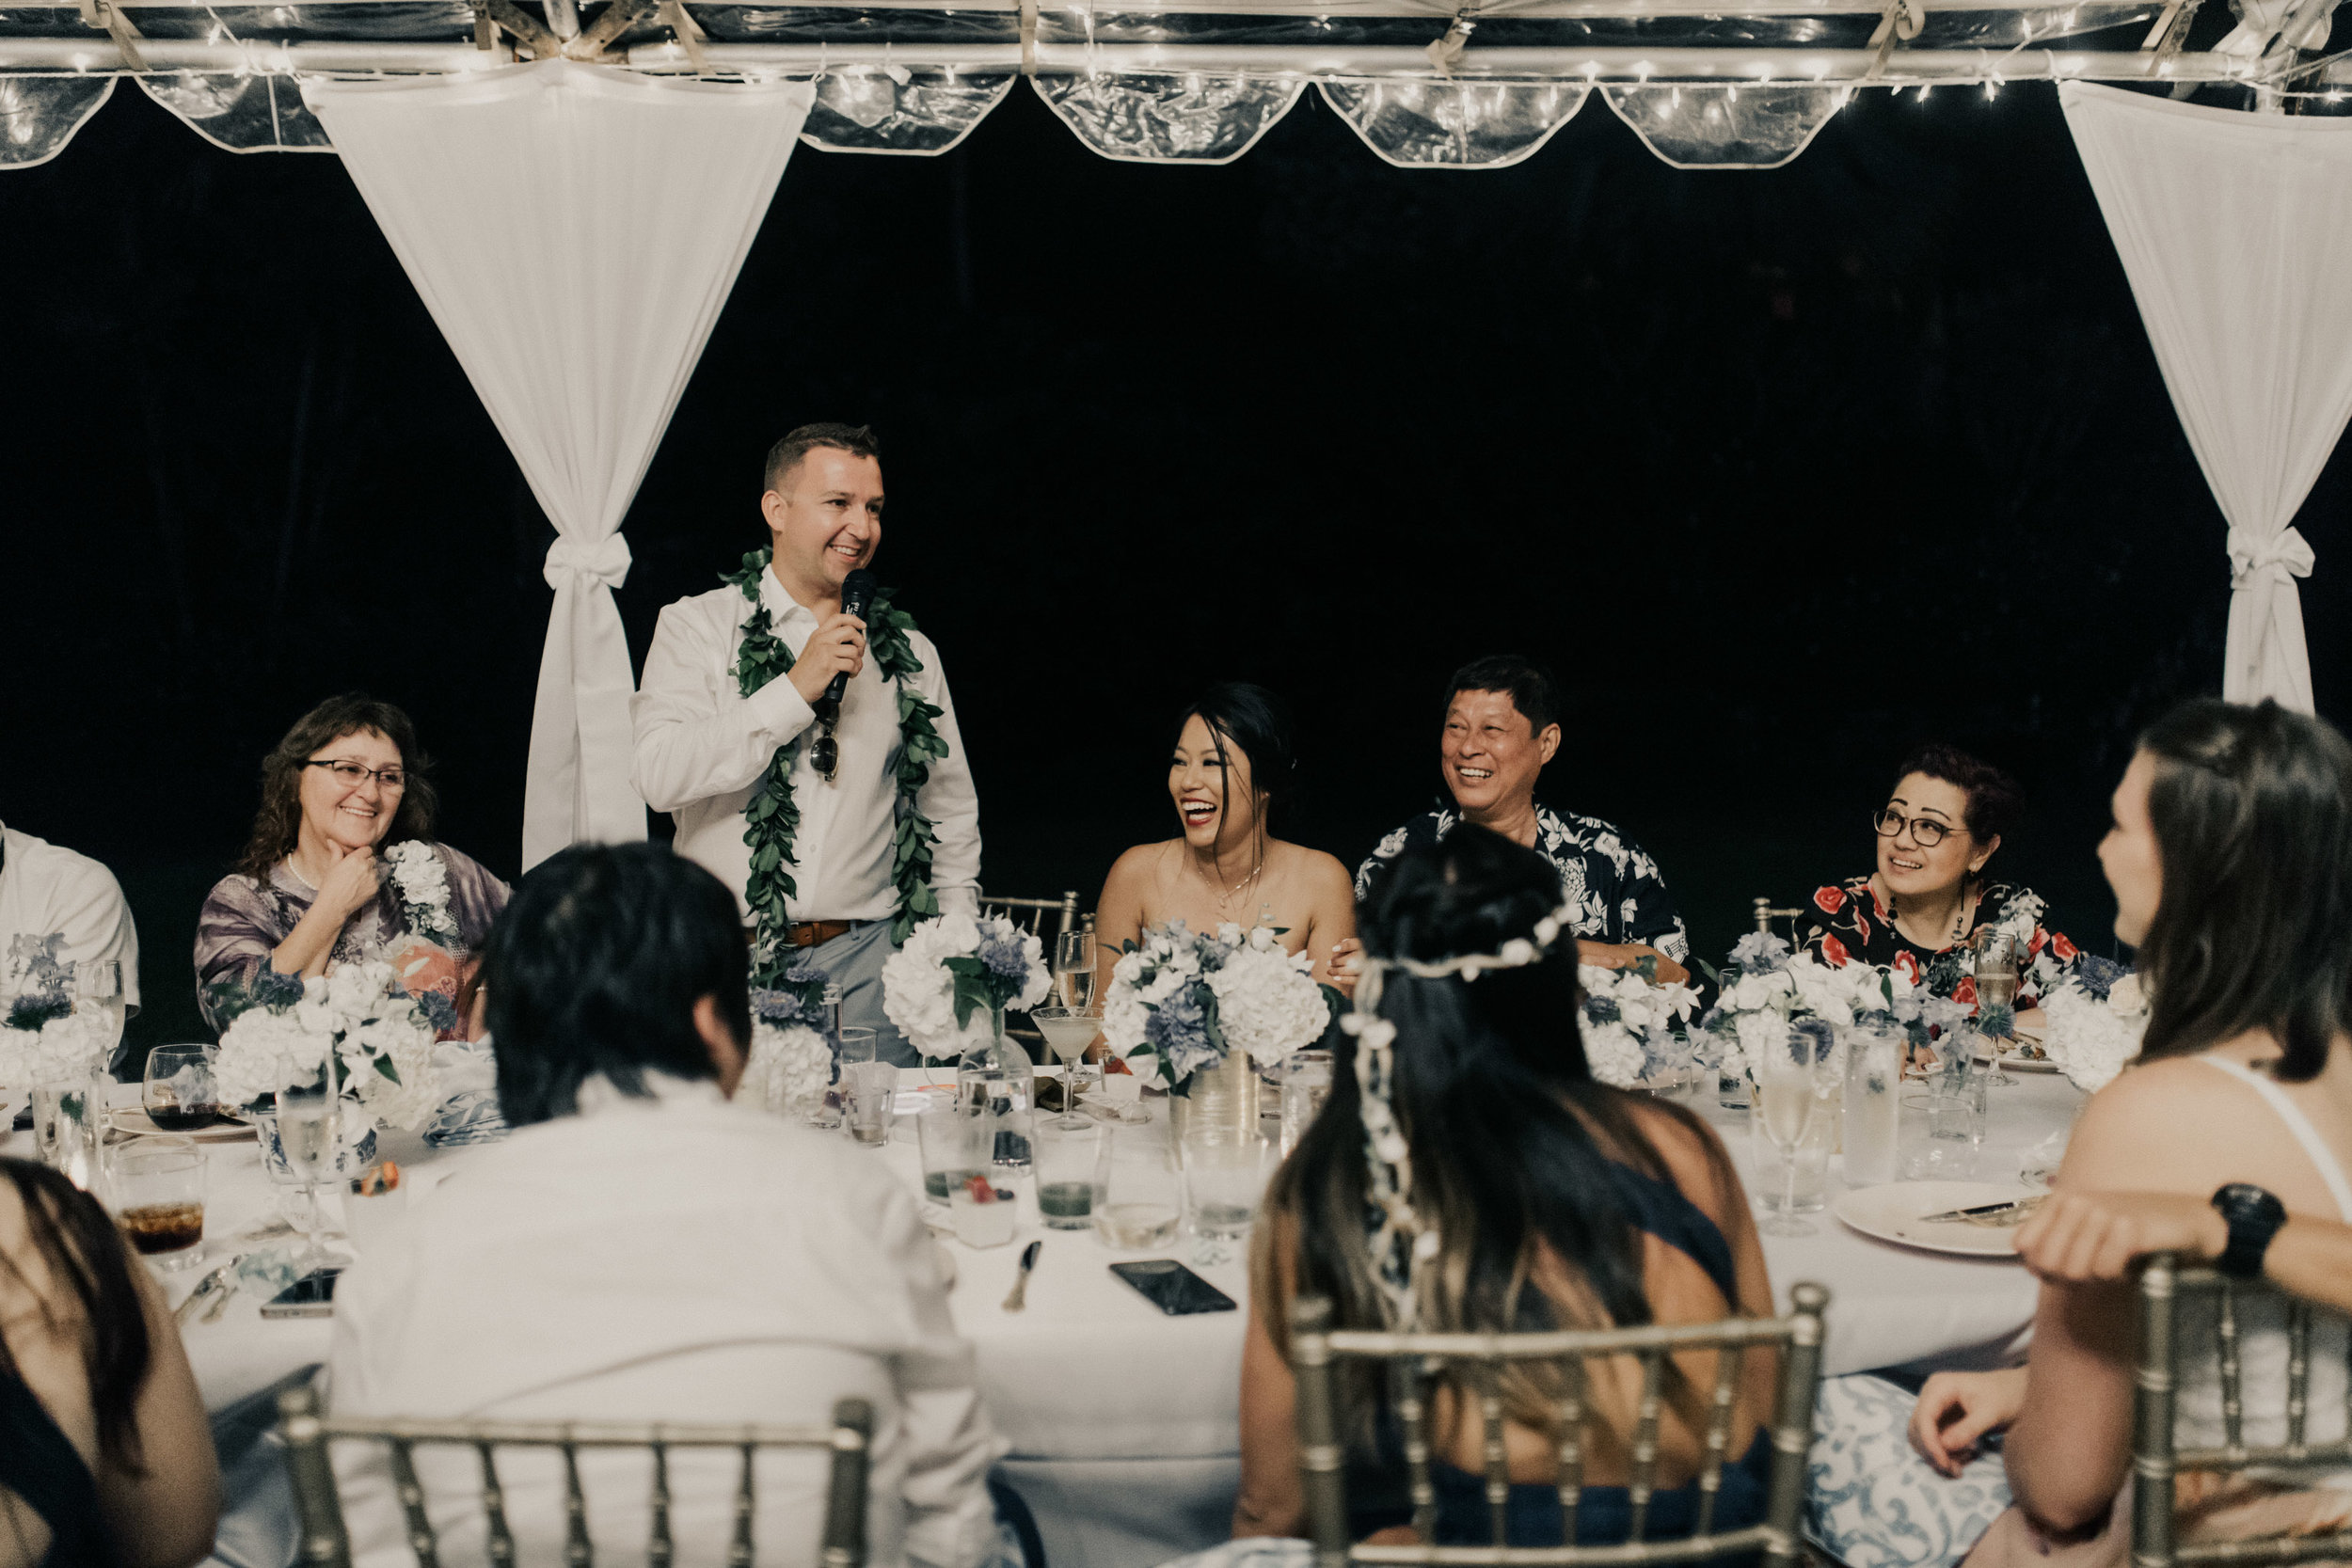 Groom speech at a Kualoa Ranch wedding. Photo by Oahu wedding photographer Desiree Leilani